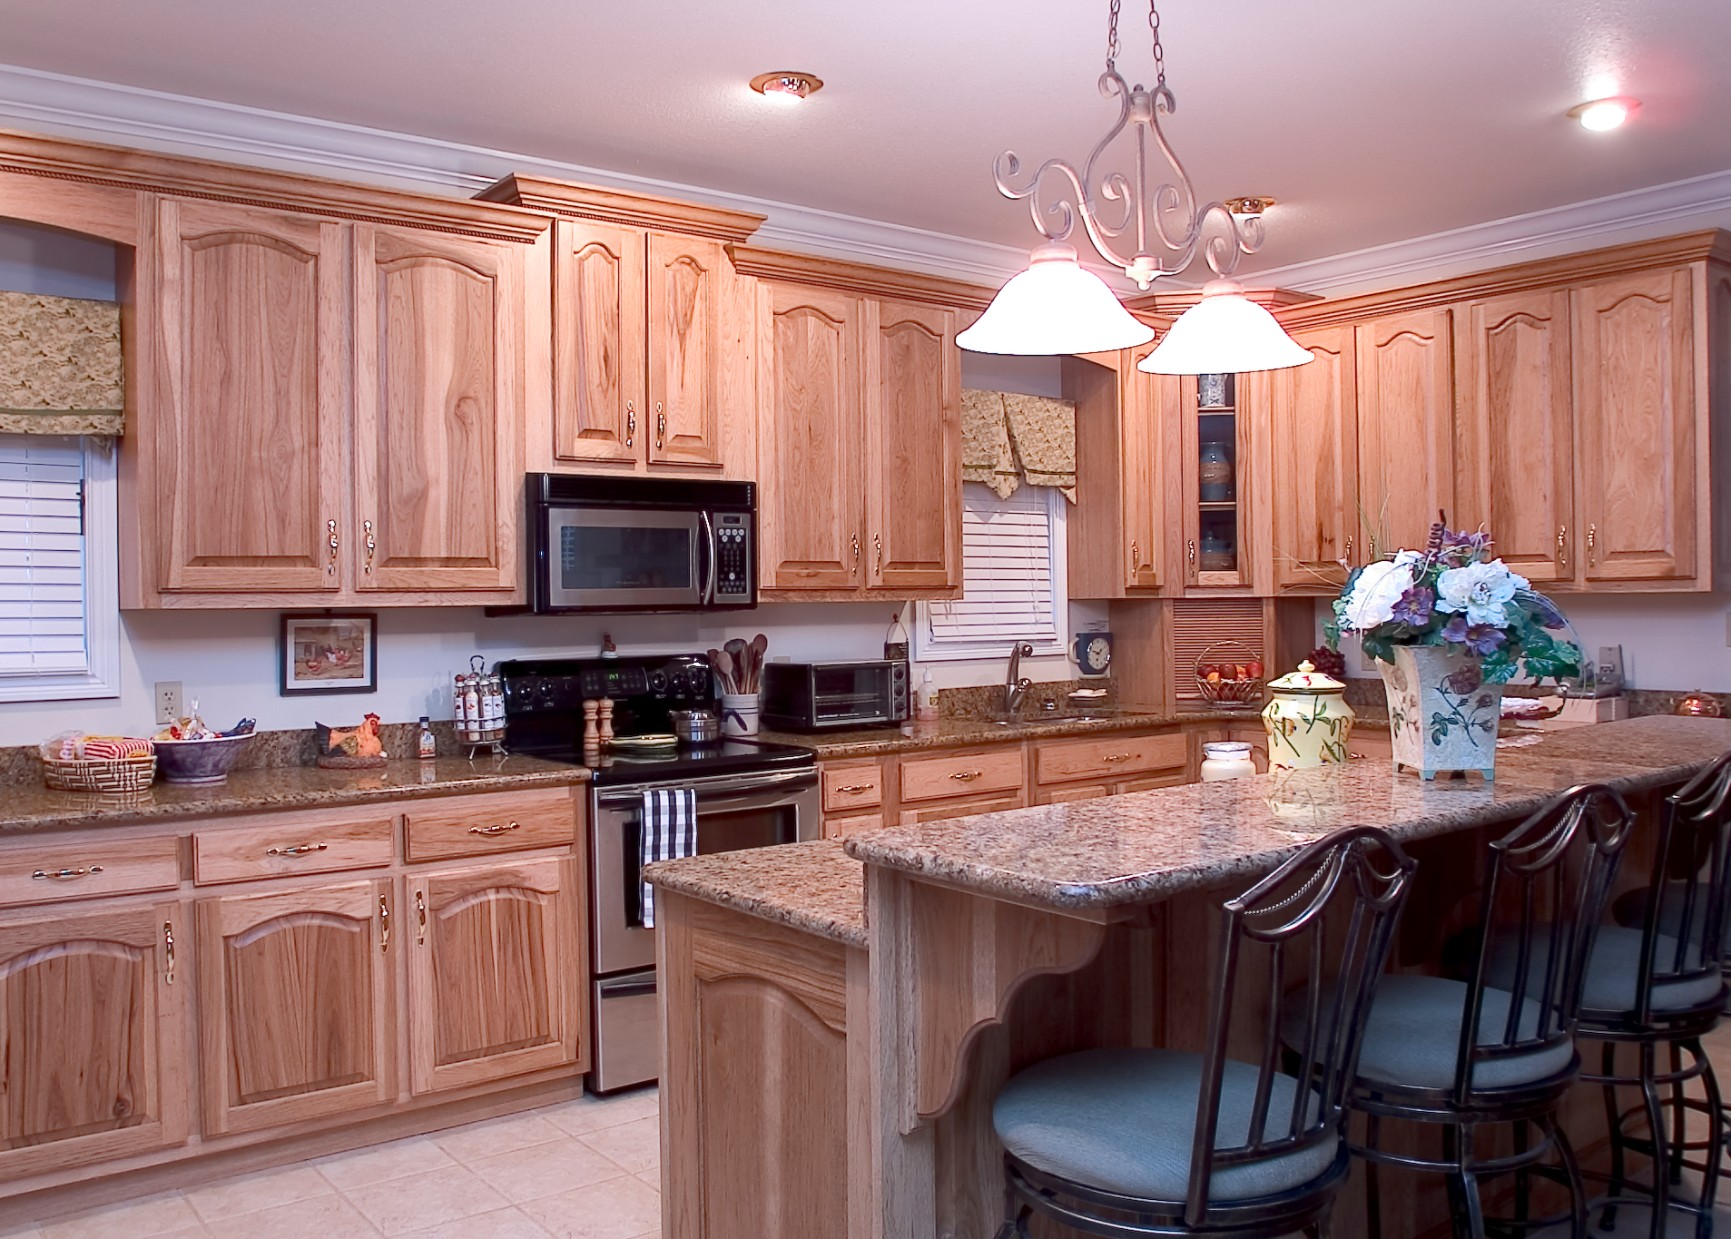 Hickory Kitchens - Wood Hollow Cabinets